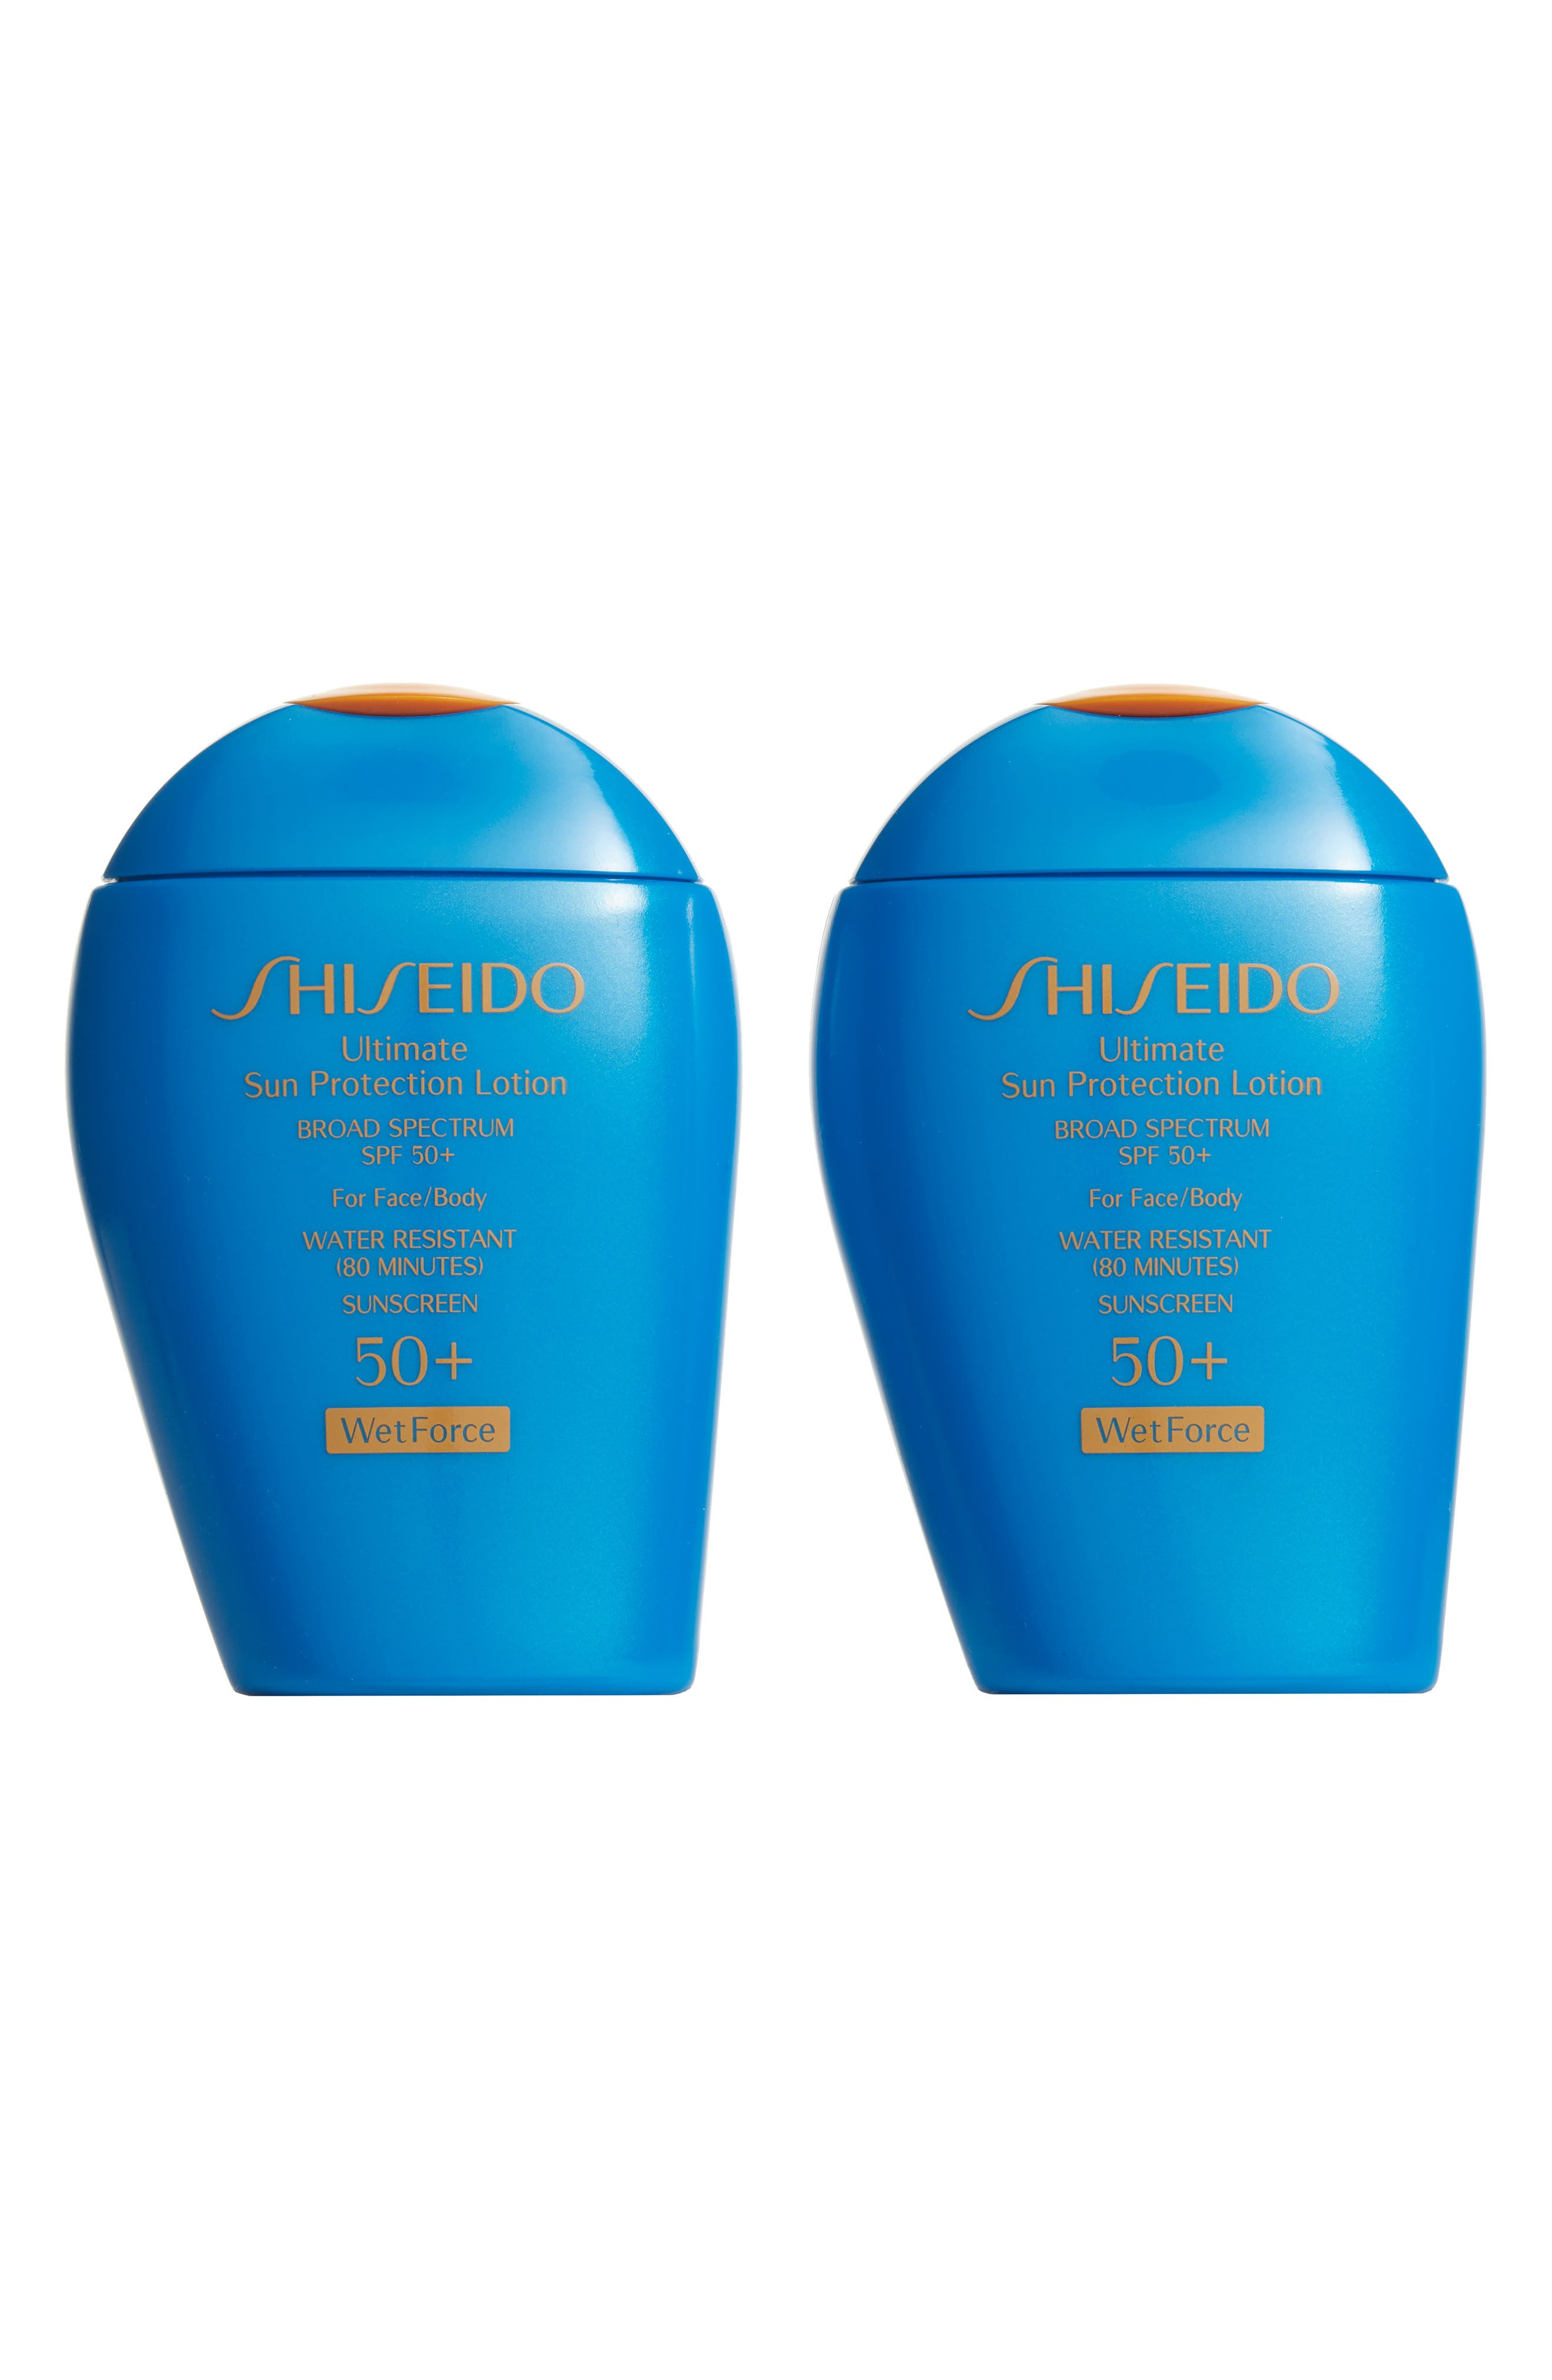 Shiseido Ultimate Sun Protection Lotion SPF 50+ Duo ($80 Value)